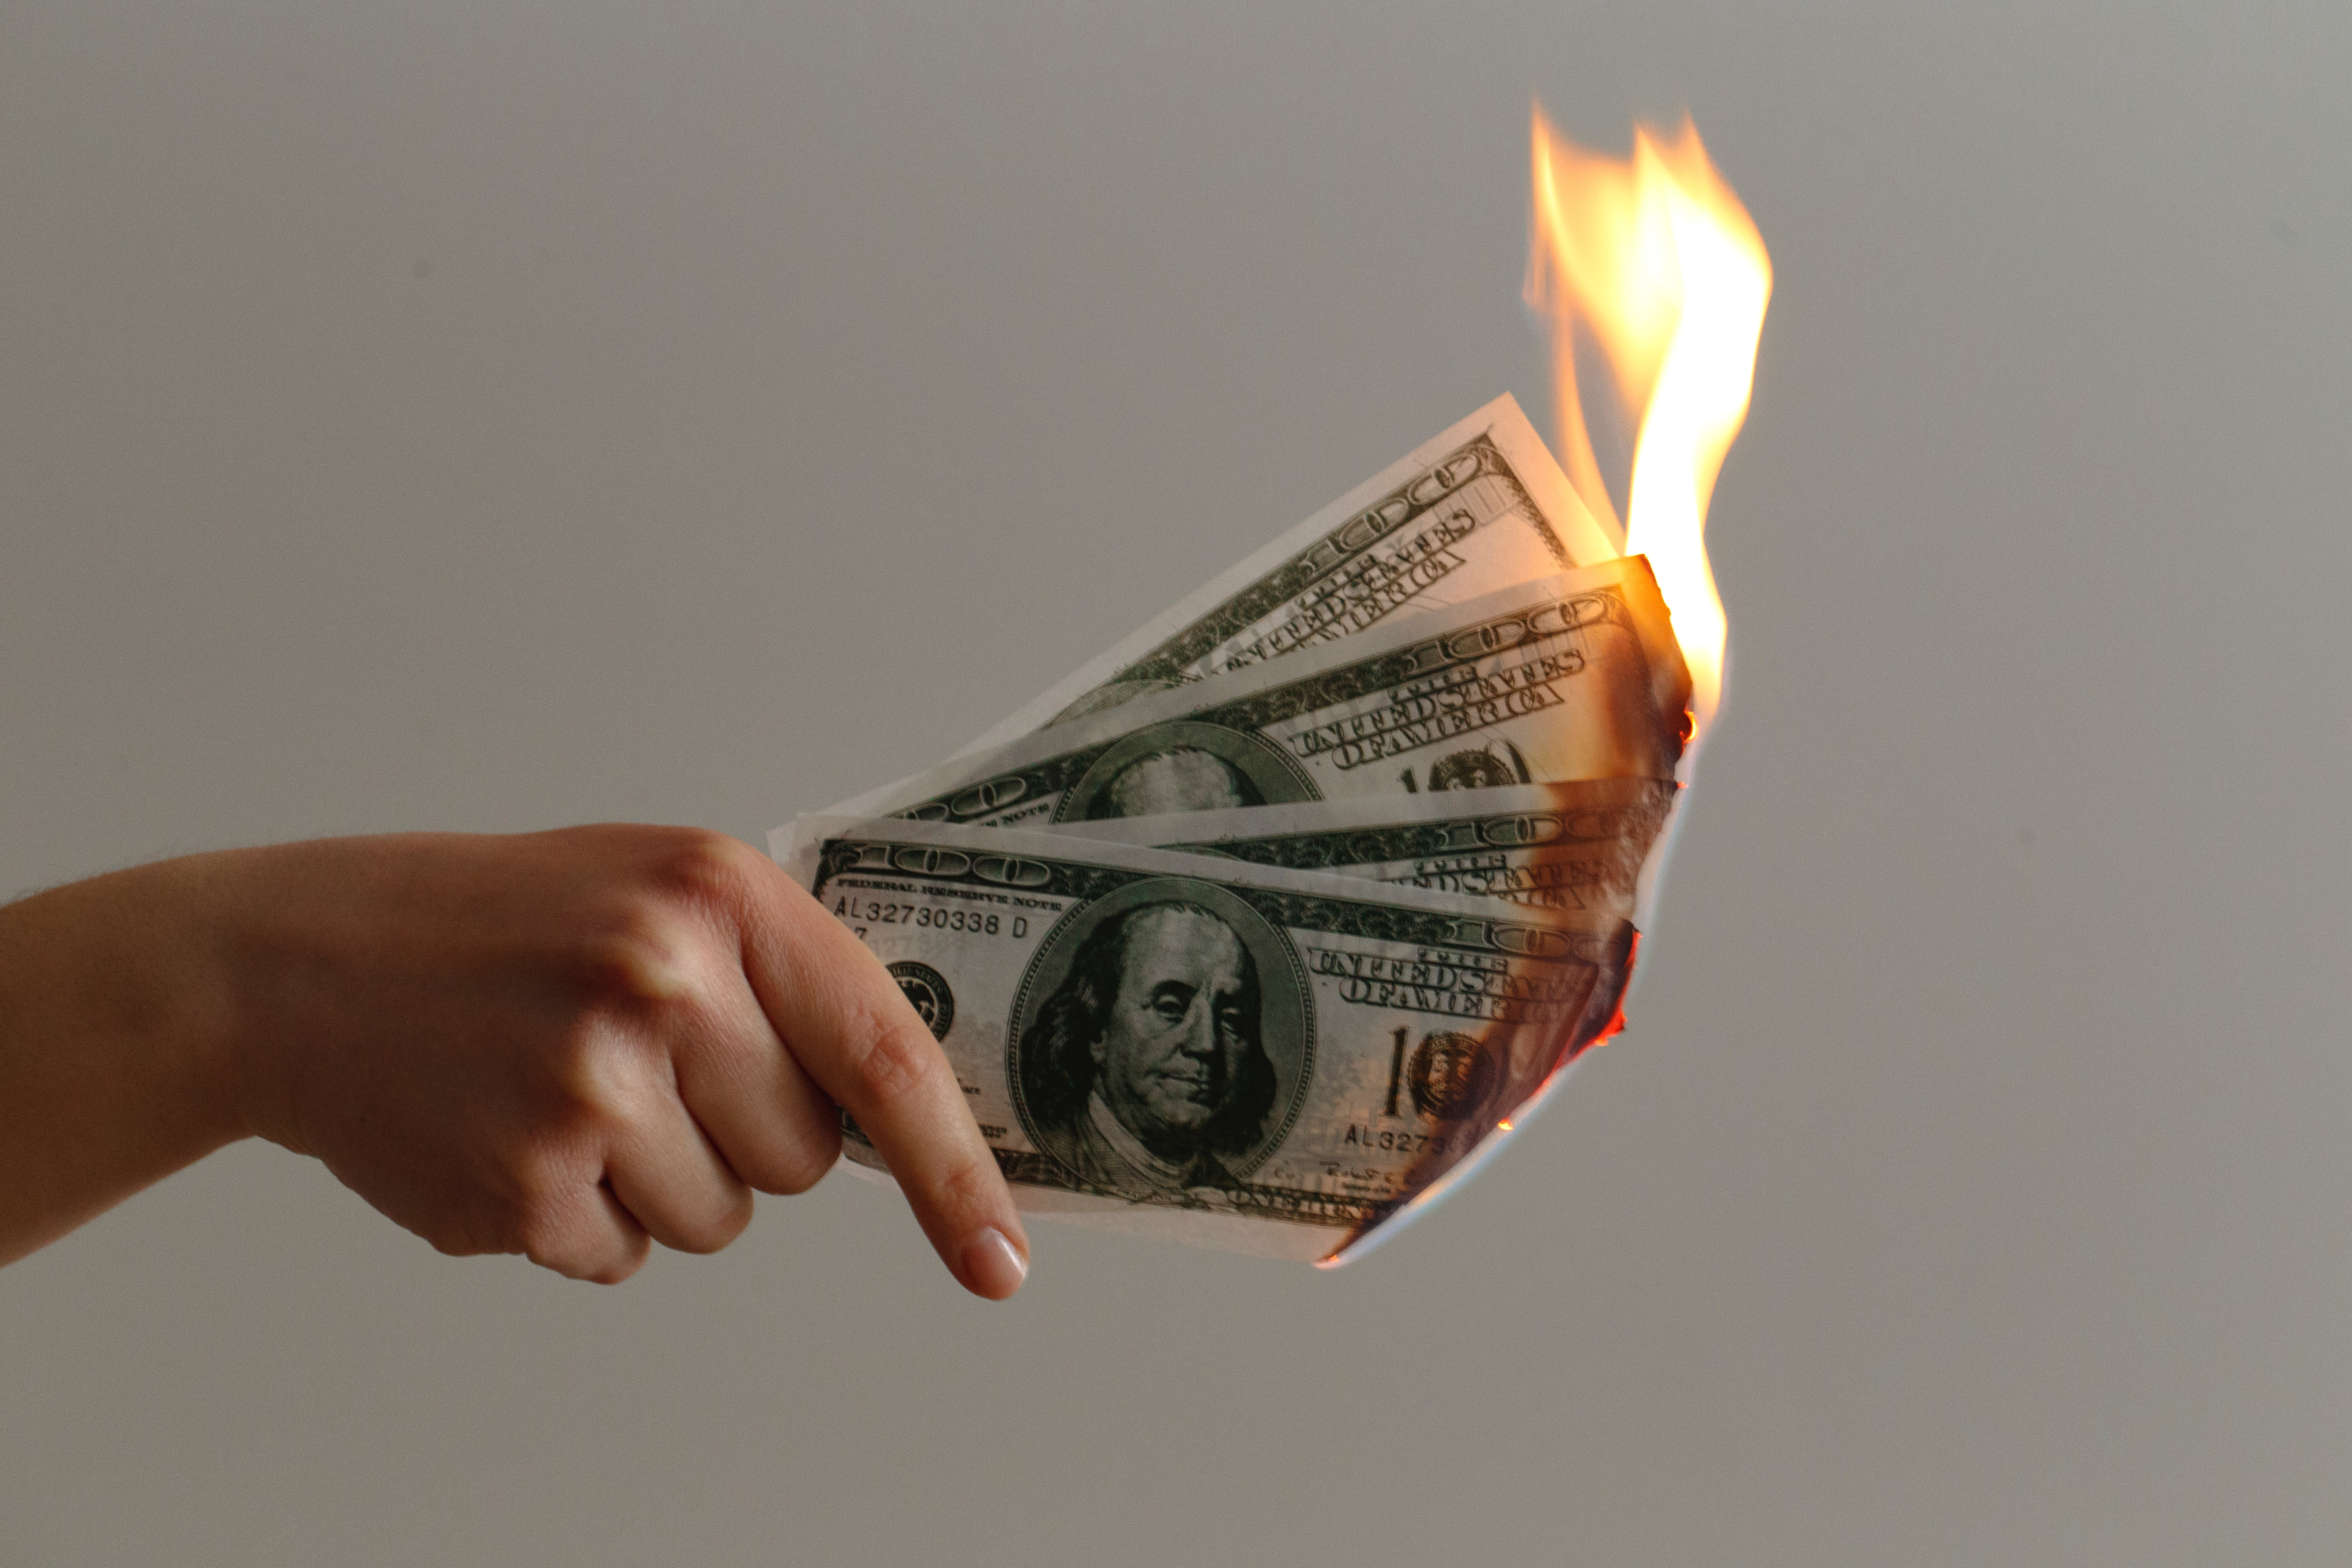 401k Fees - Burn Money